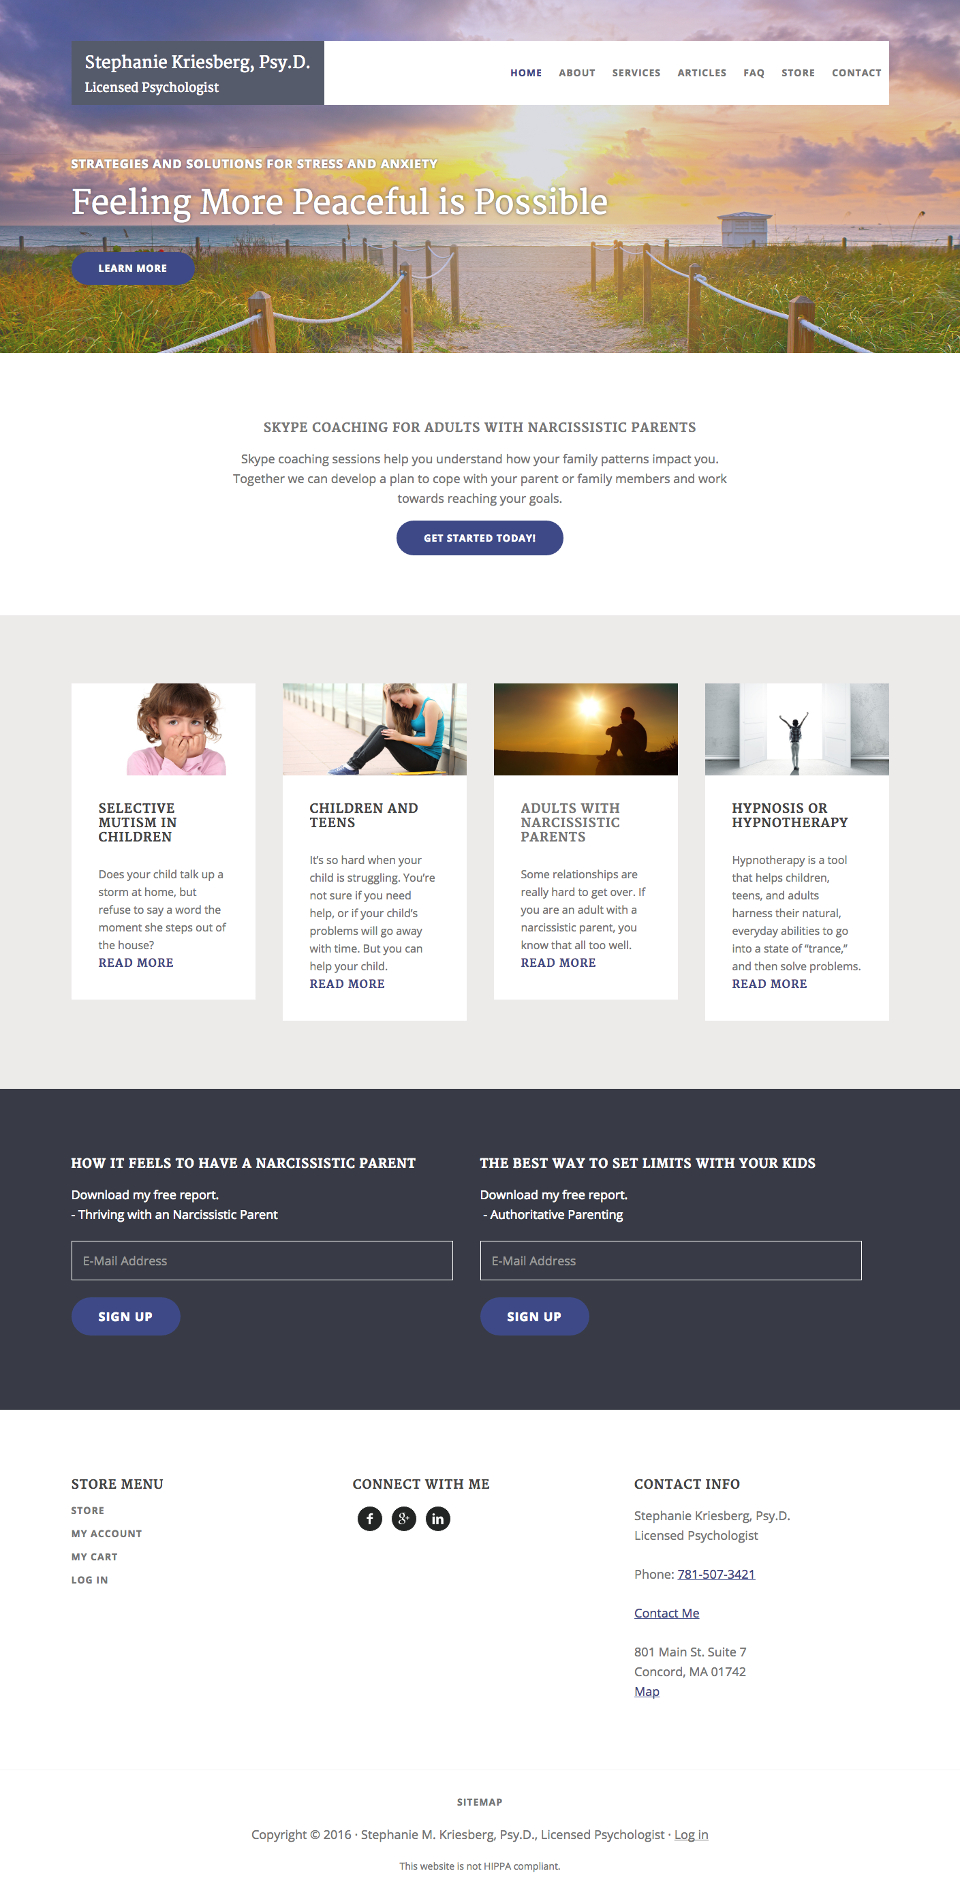 Genesis Theme Customization for Psychologist Website | Amethyst